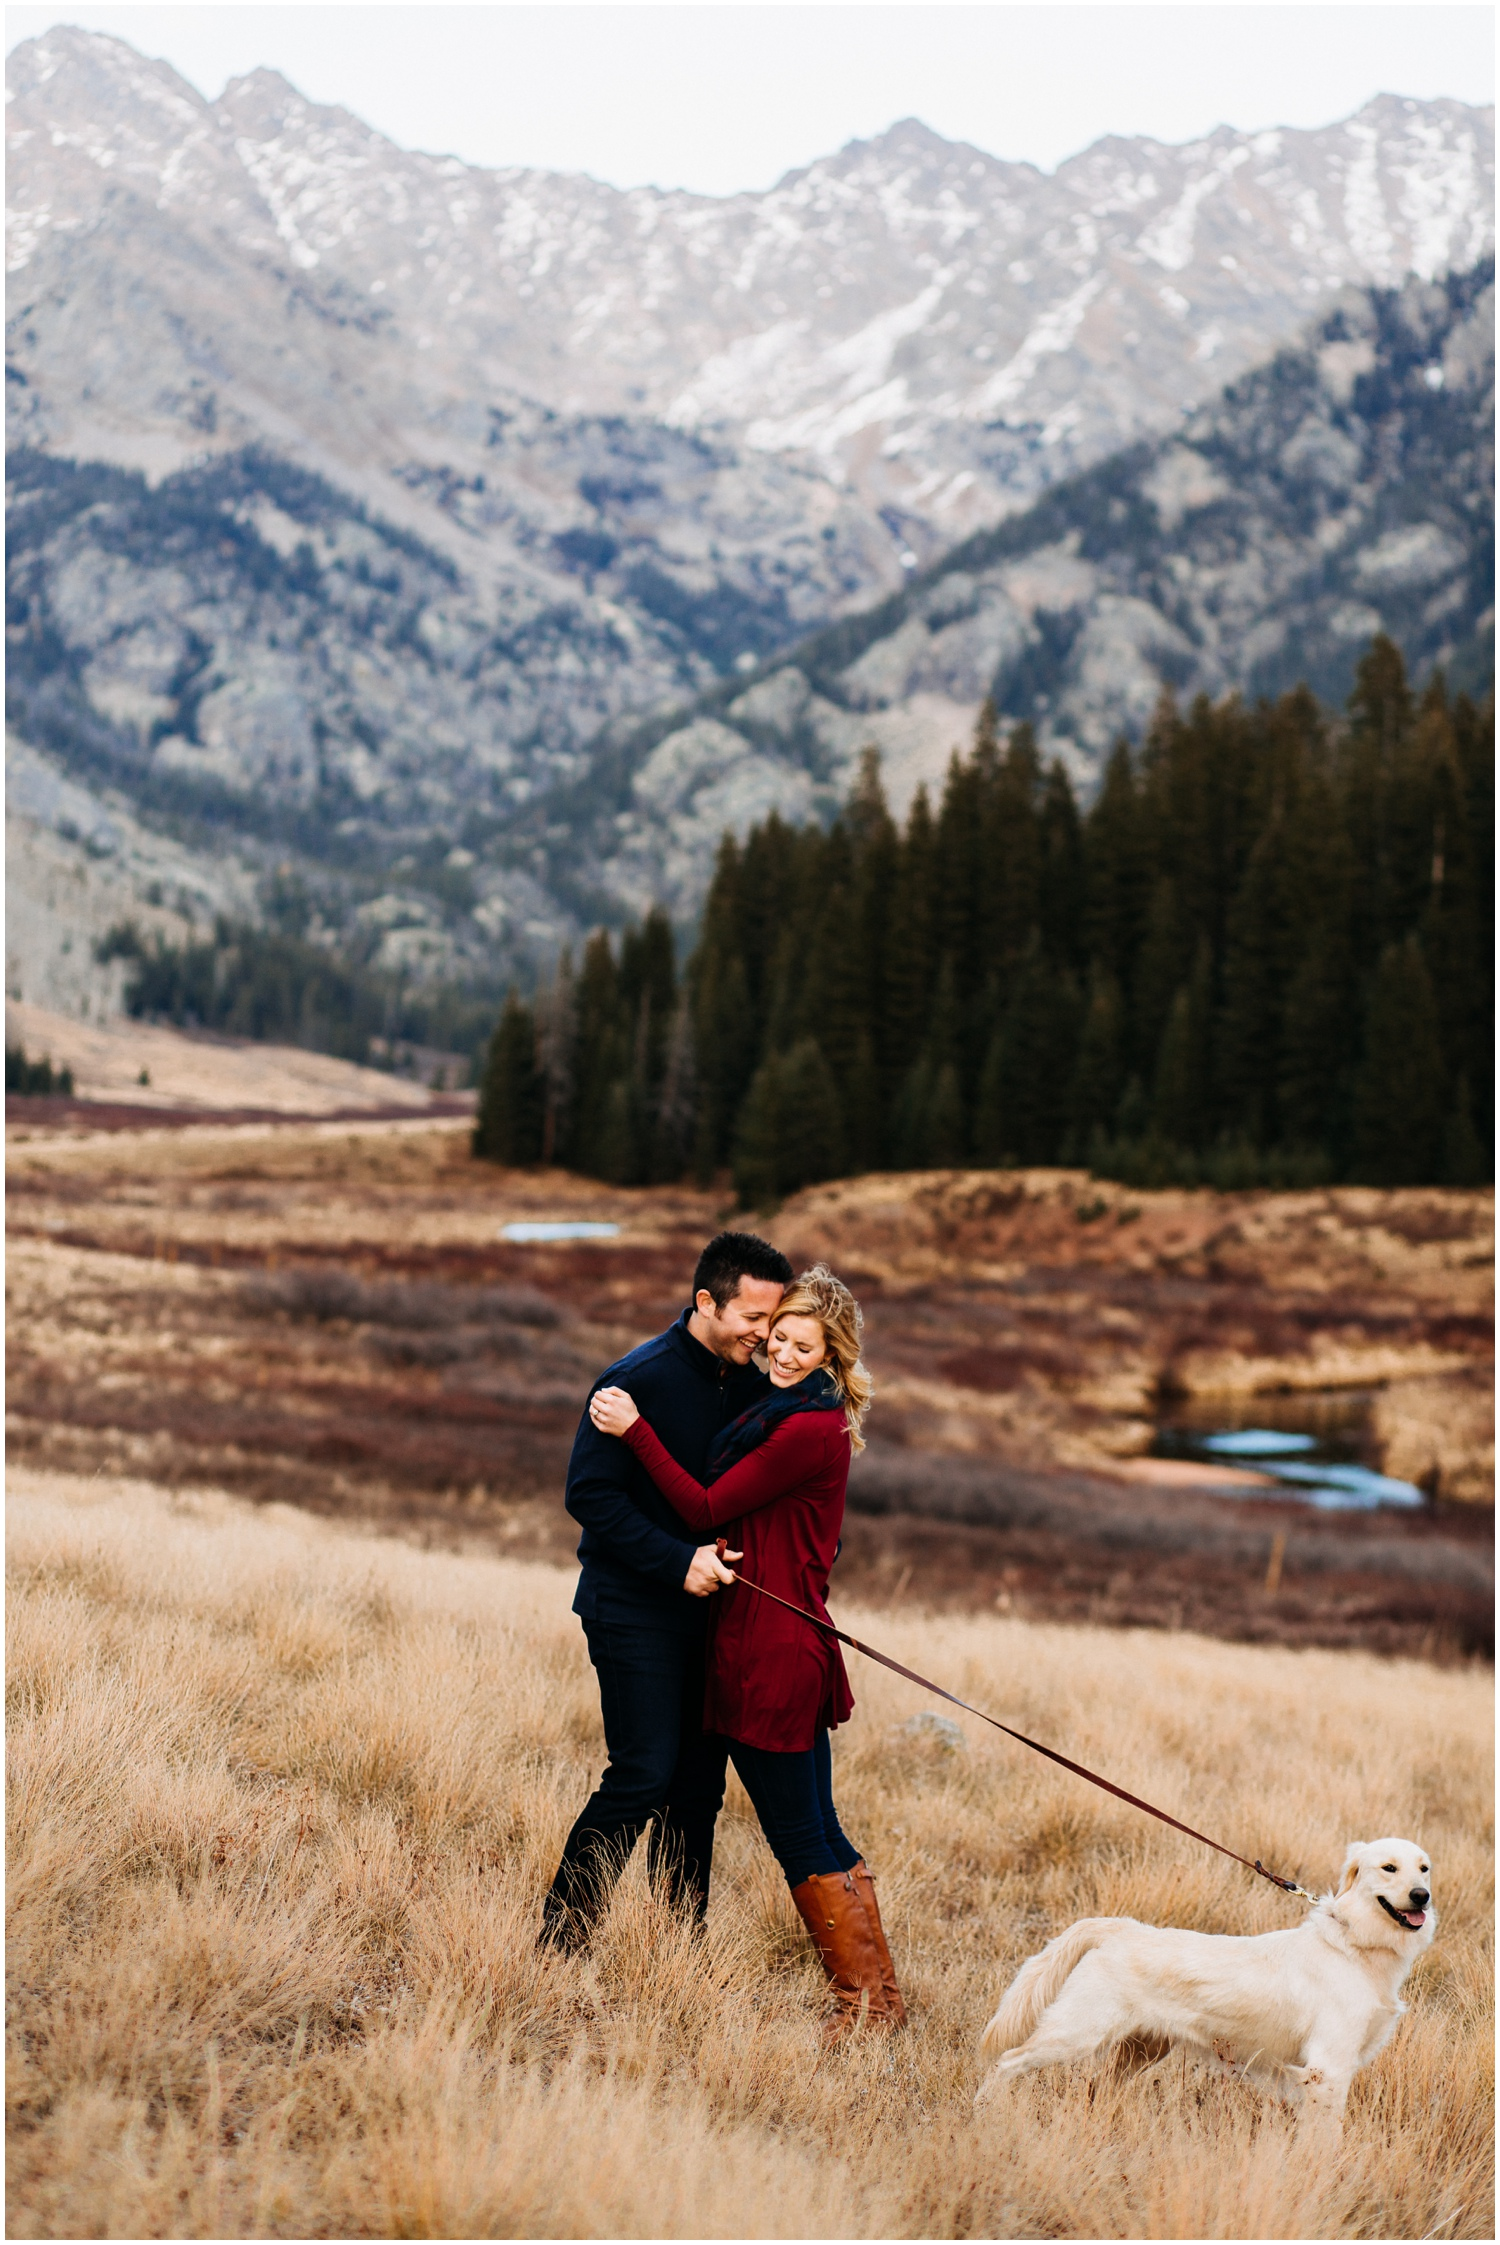 adventure_photo_engagement_session_vail_colorado_taylor_powers__0052.jpg